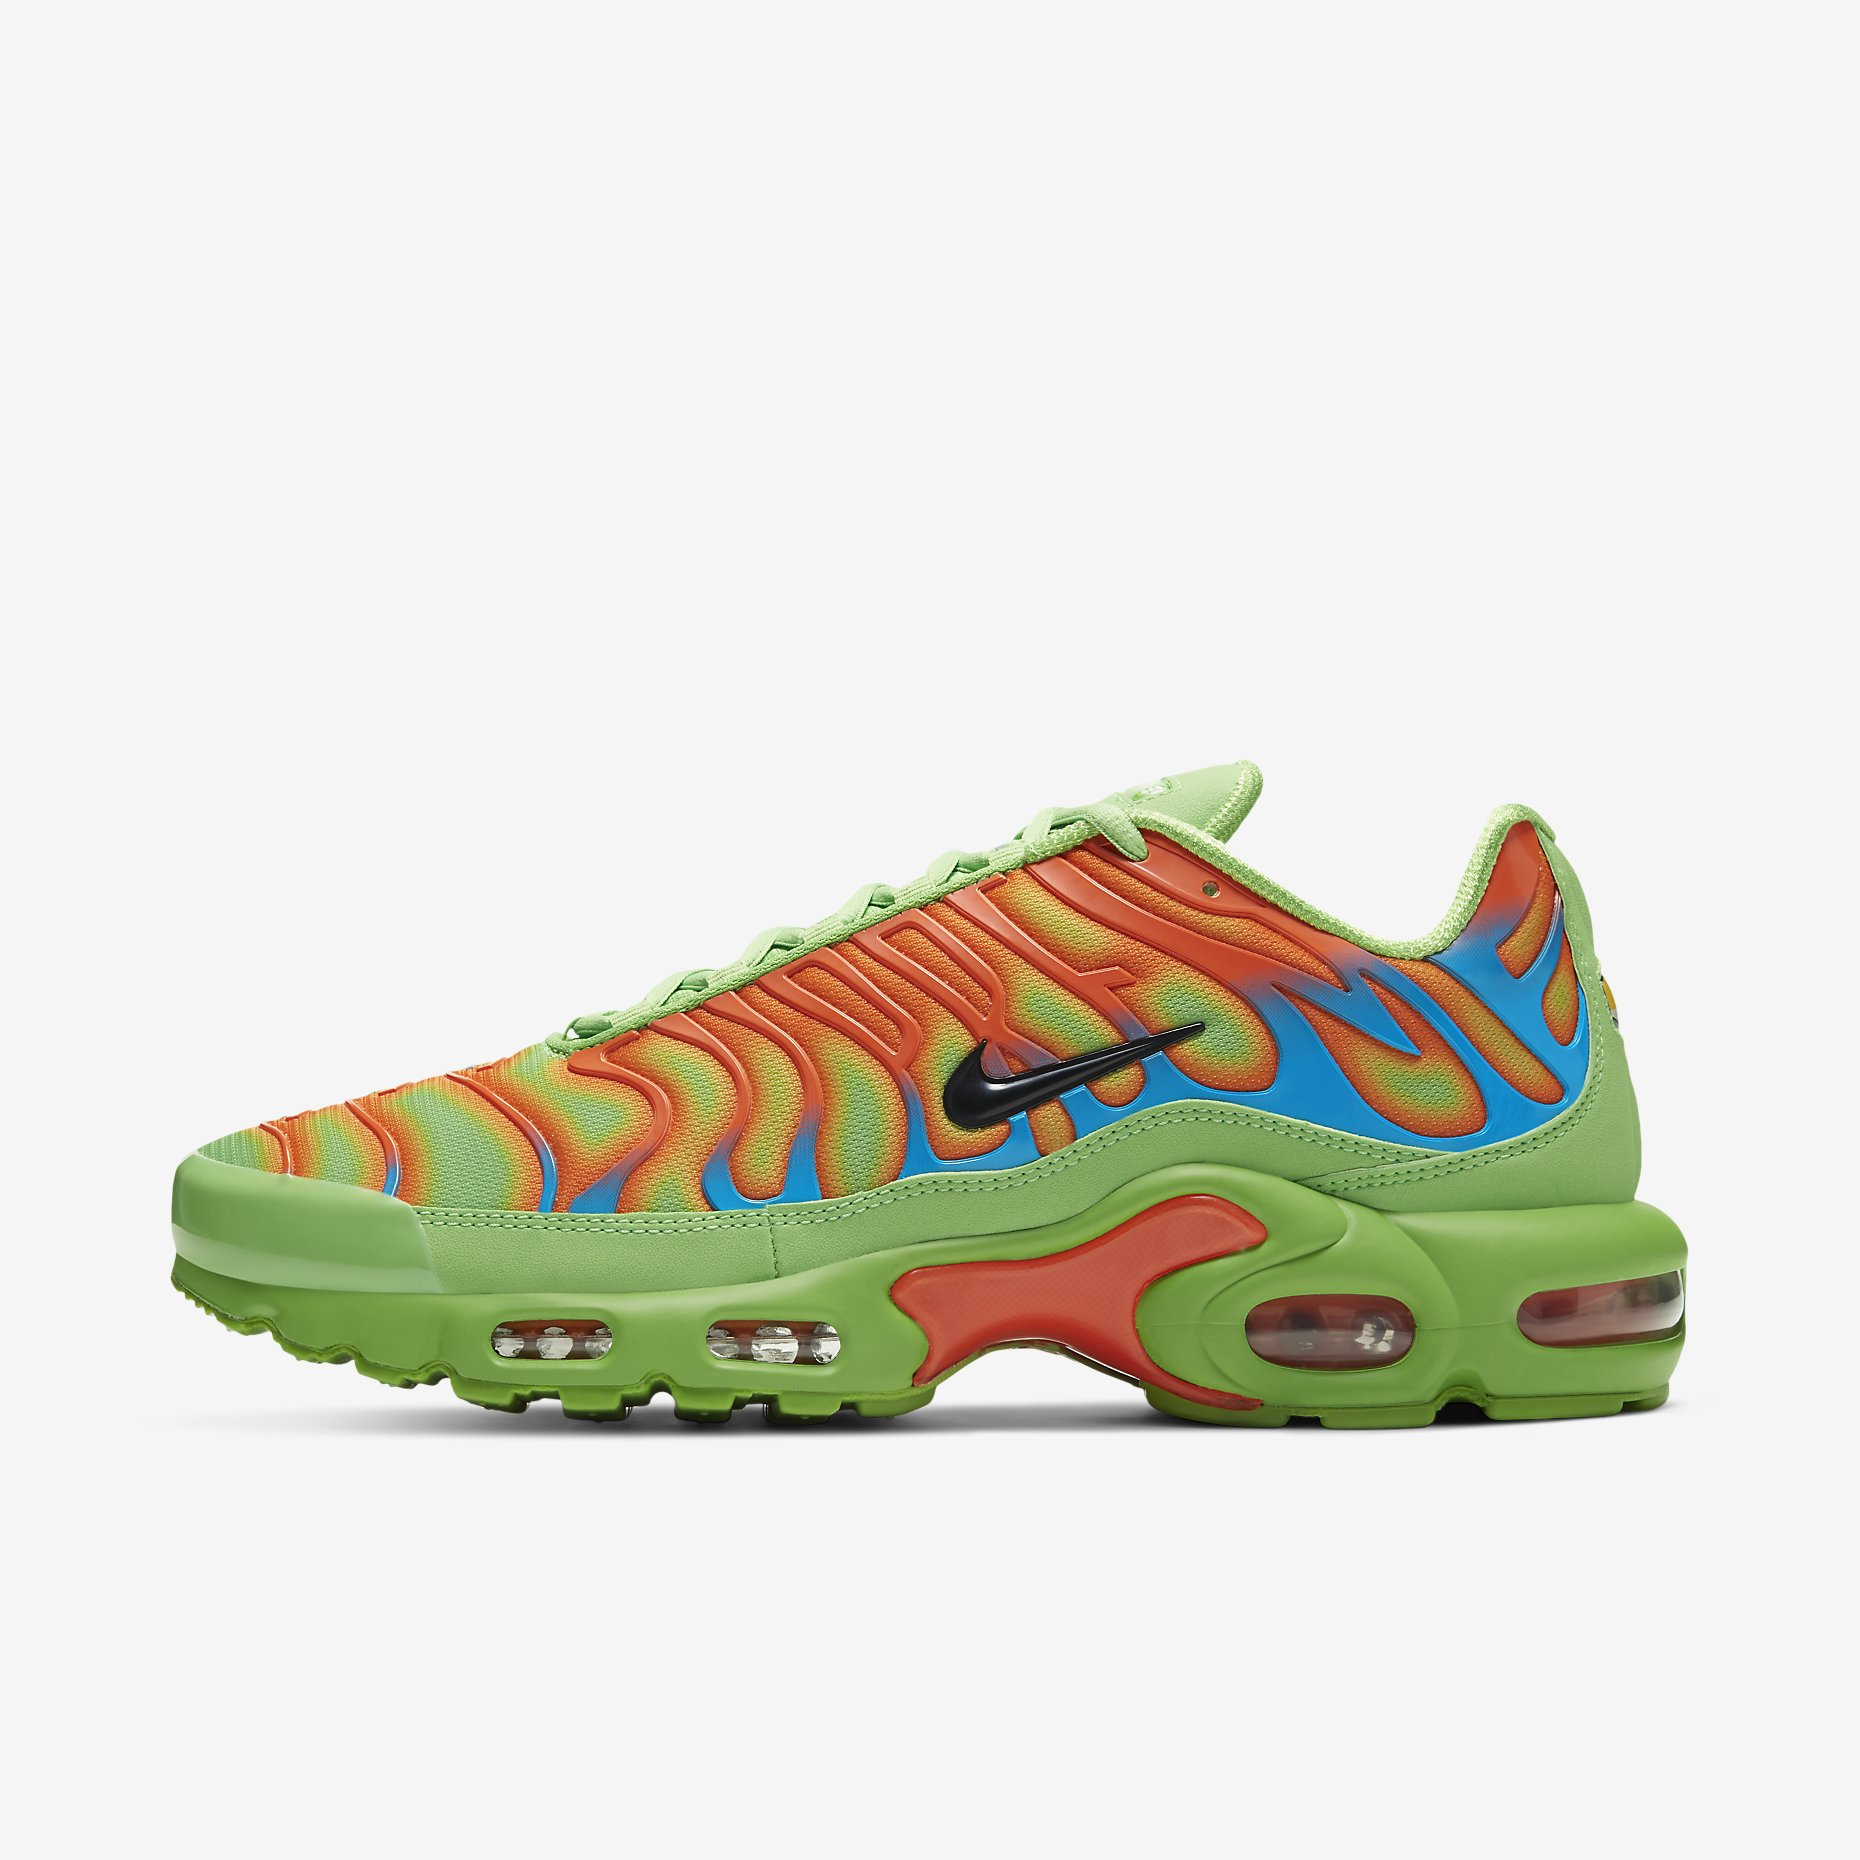 Supreme x Nike Air Max Plus 'Mean Green'}